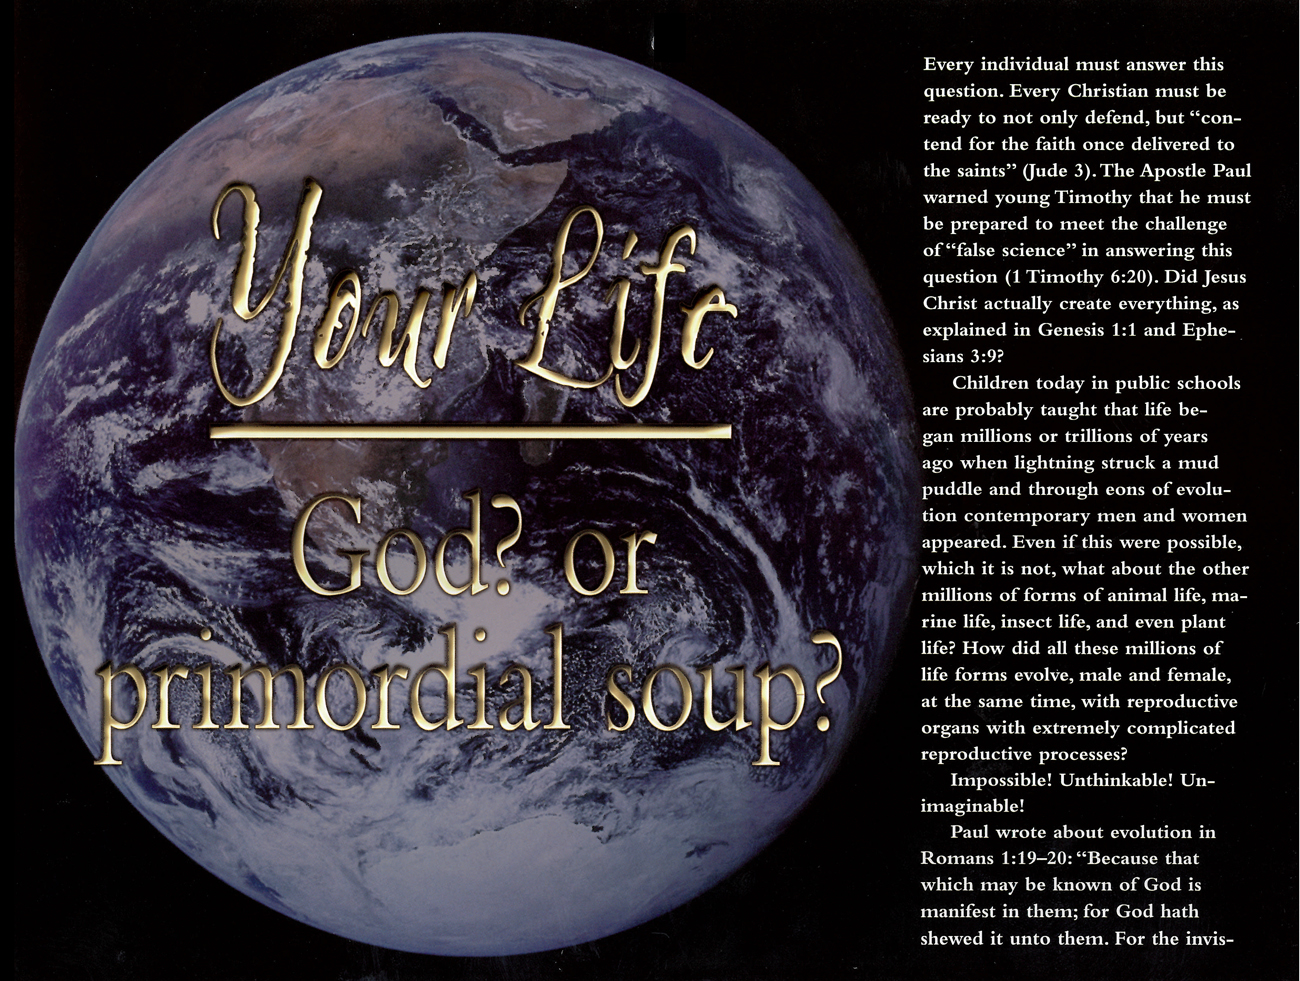 2011 Prophecy Calendar: Your Life — God? or Primordial soup?